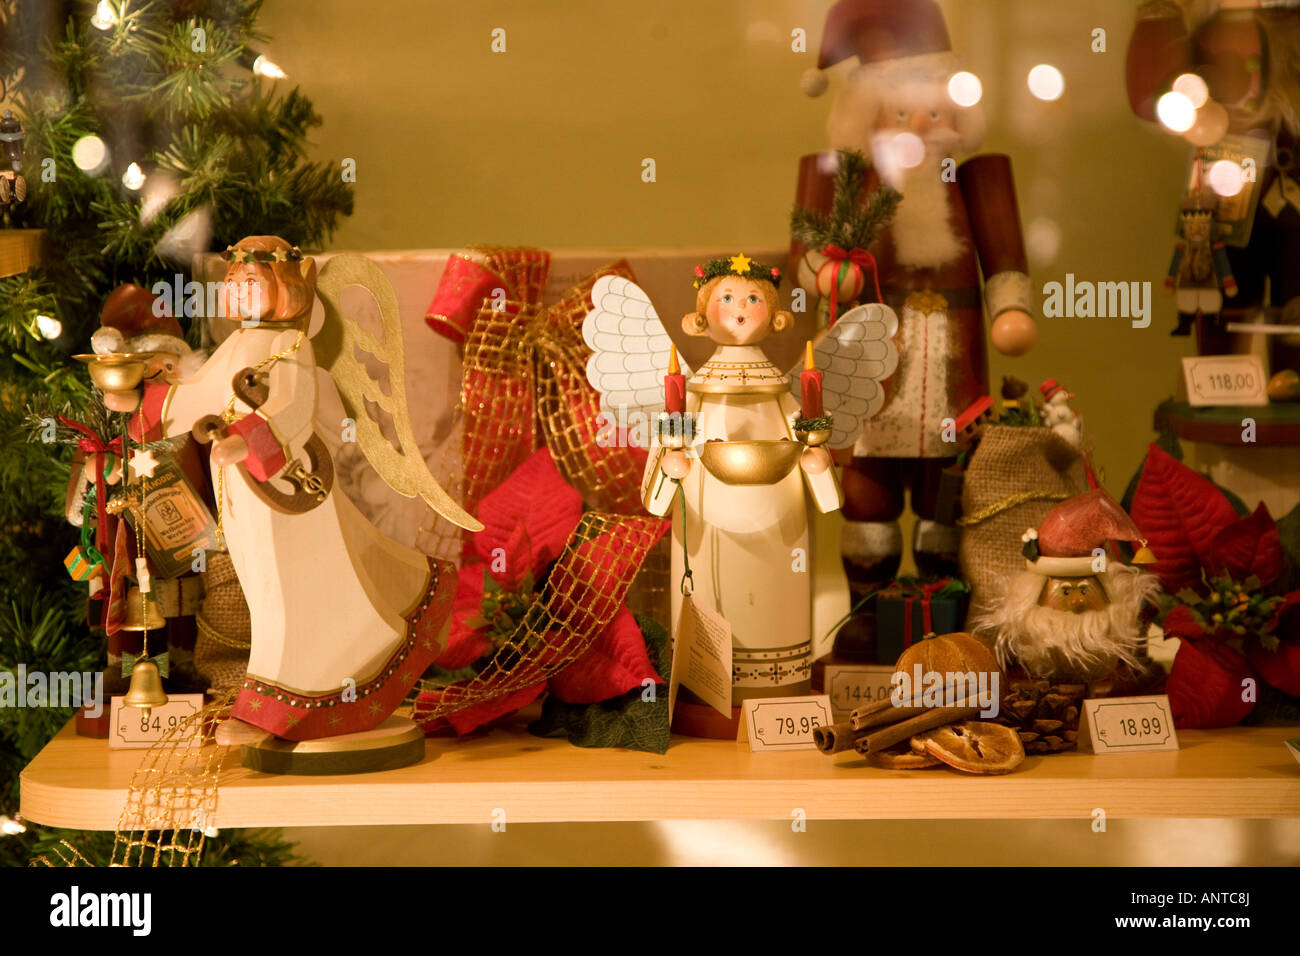 christmas angels on sale in nuremberg christmas market germany stock image - Christmas Angels For Sale